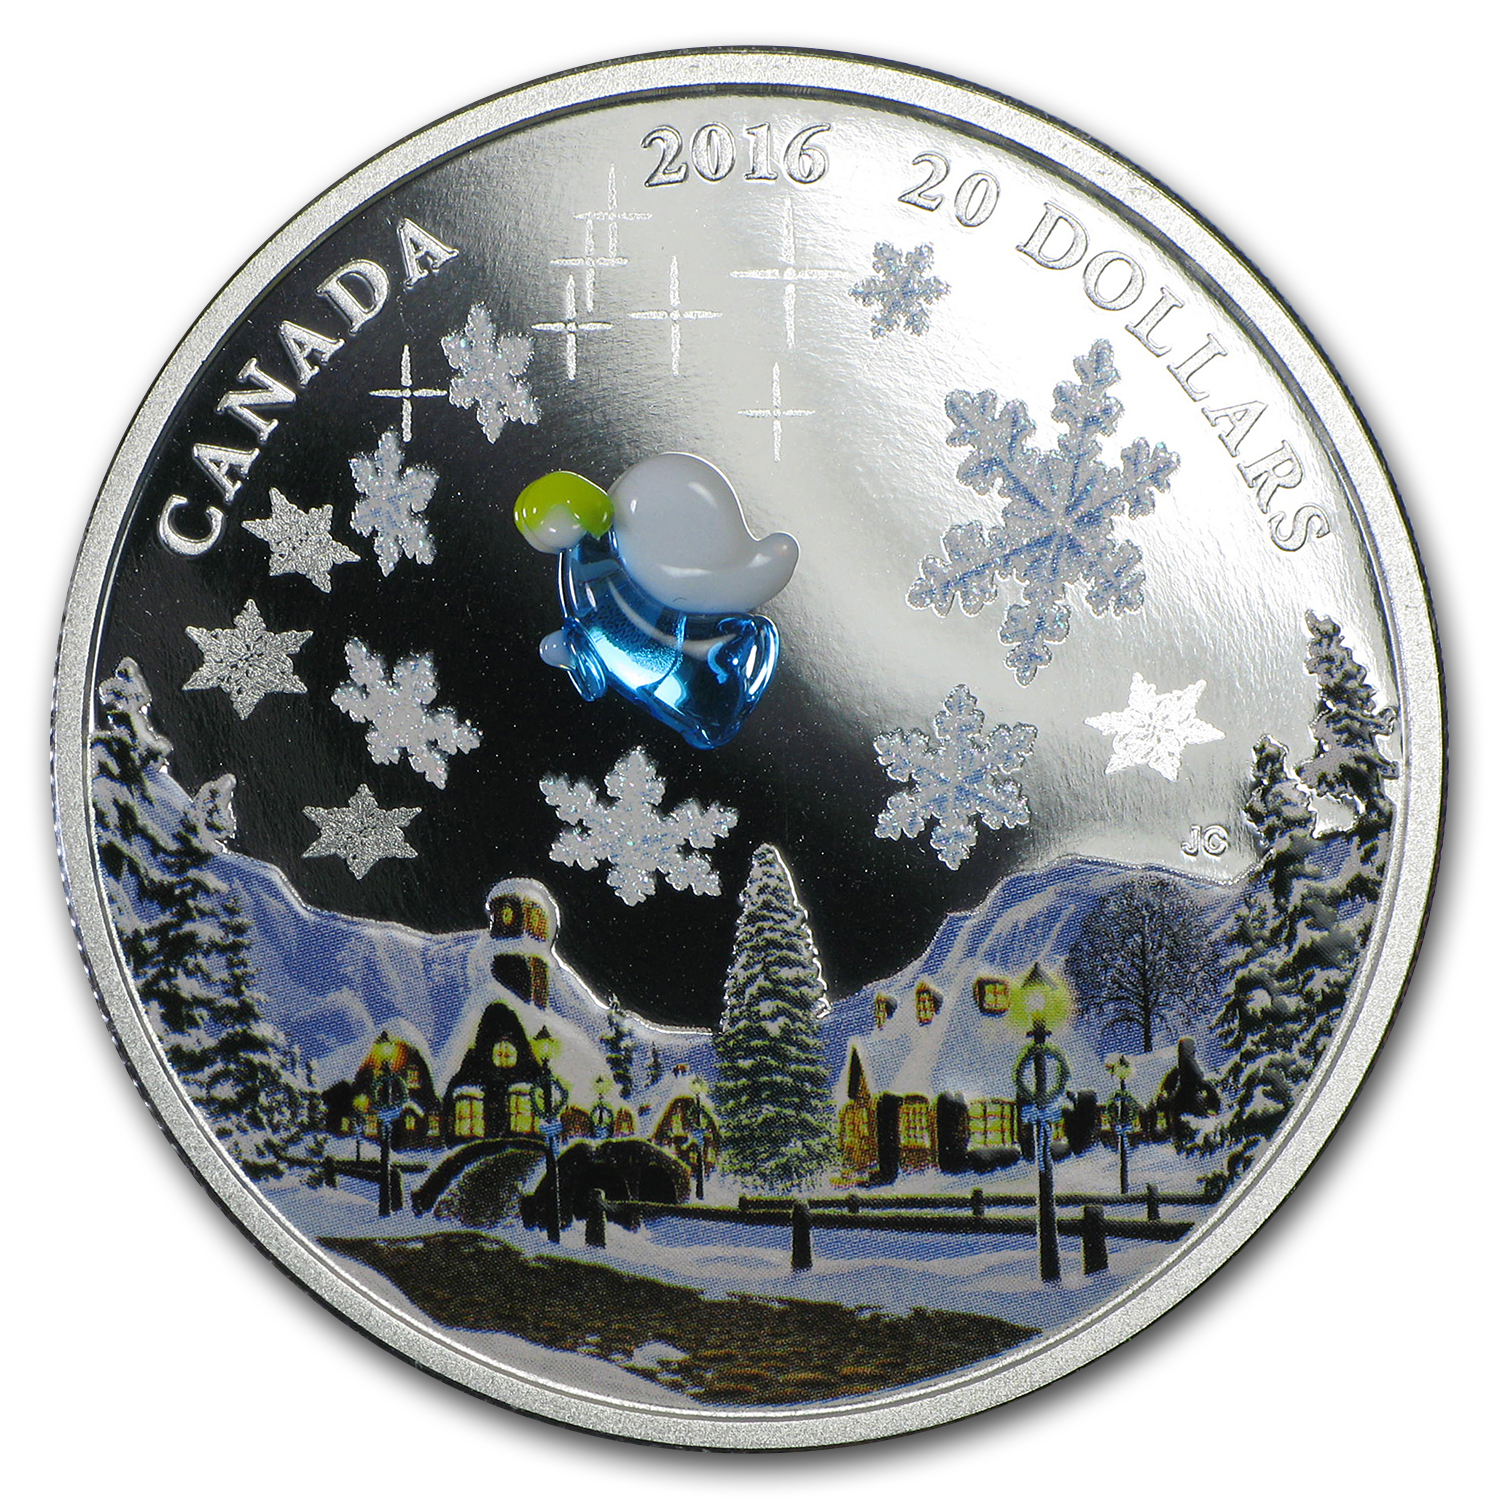 2016 Canada 1 oz Silver $20 Venetian Glass My Angel